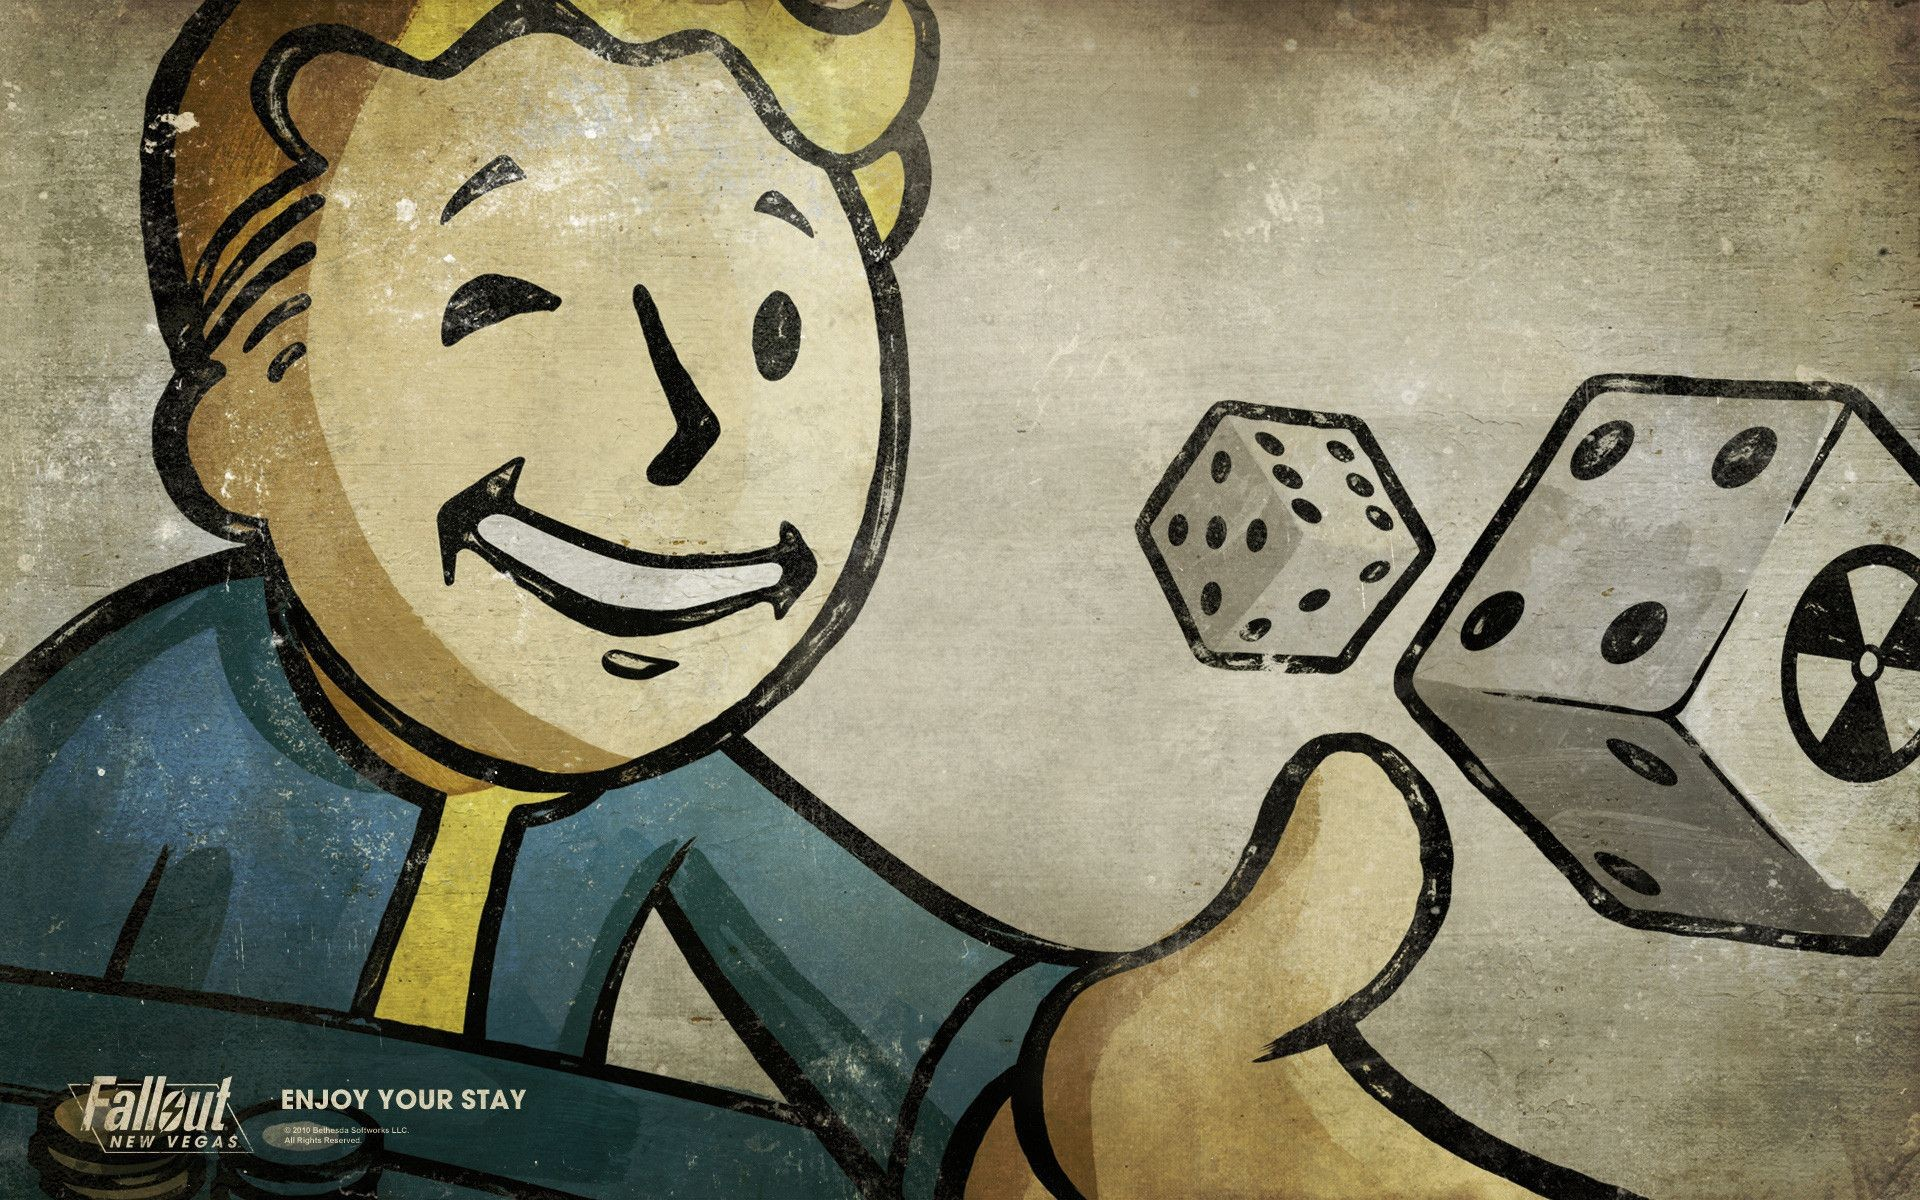 Get free high quality HD wallpapers fallout pip boy iphone 5 wallpaper